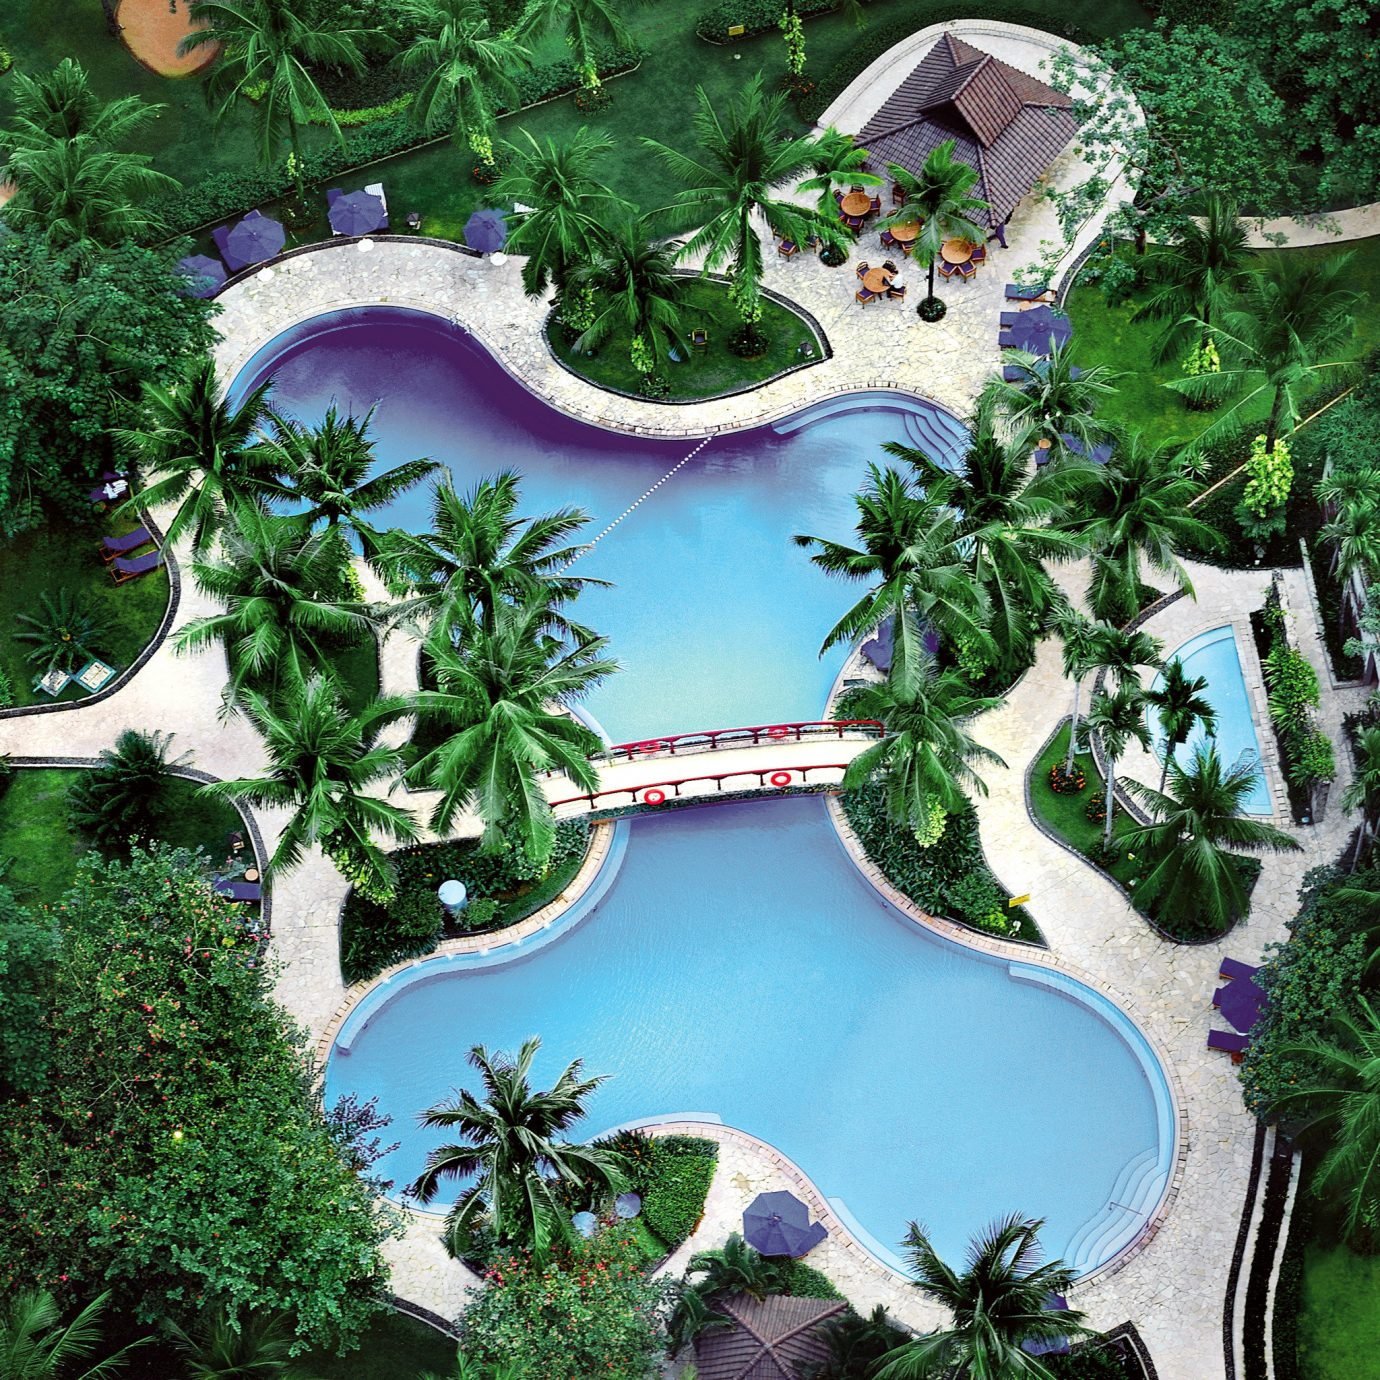 All-inclusive Hot tub/Jacuzzi Luxury Pool tree text plant ecosystem botany Garden mansion Resort Jungle screenshot backyard park amusement park biome surrounded